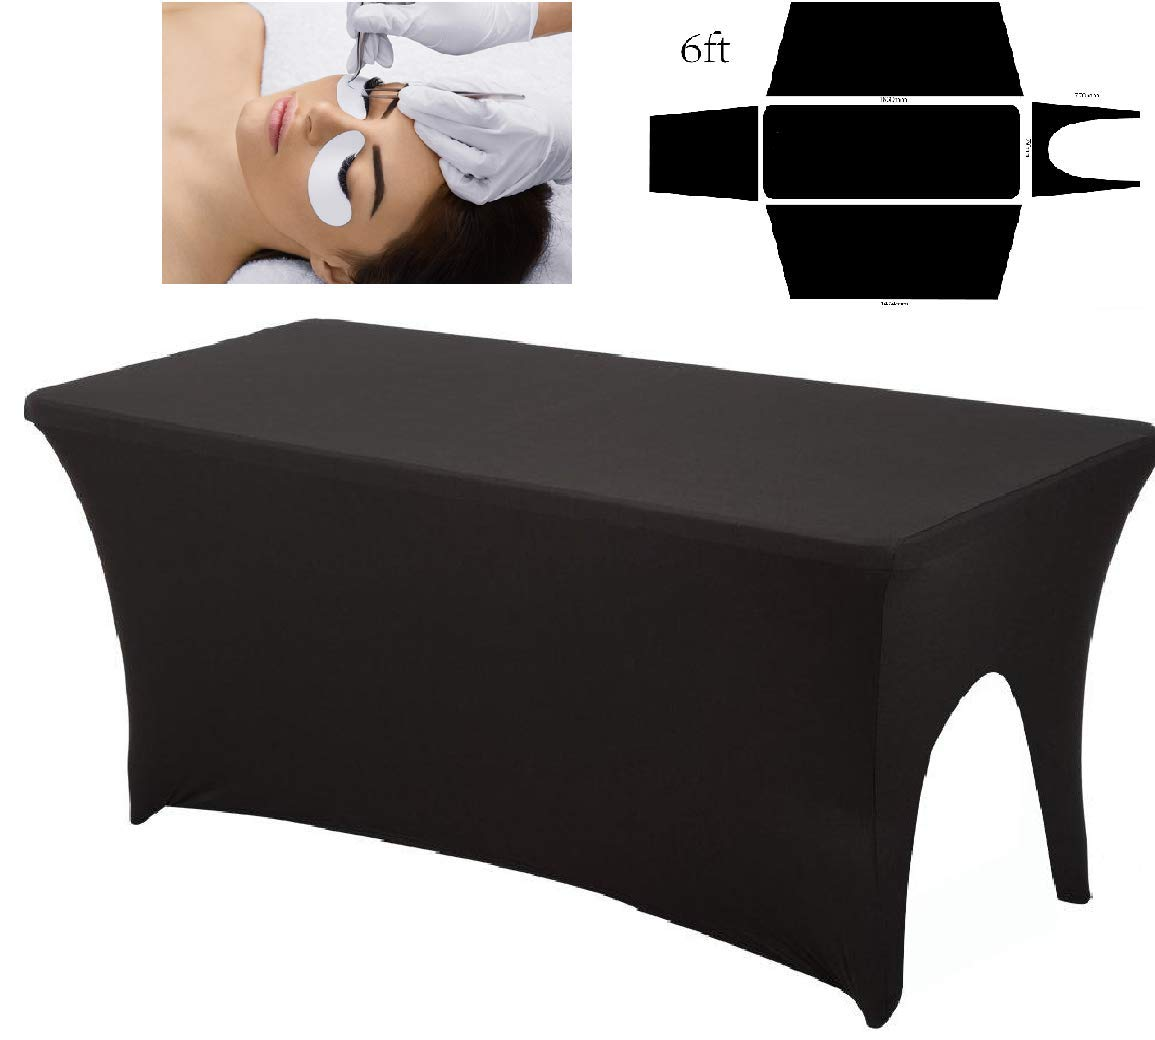 Perfectly Fitted Spa Bed Cover for Stylist Lash Bed or Massage Table - fitted sheet - Cosmetologist Table Cover - Includes ARTIST CUT-OUT (Blank)